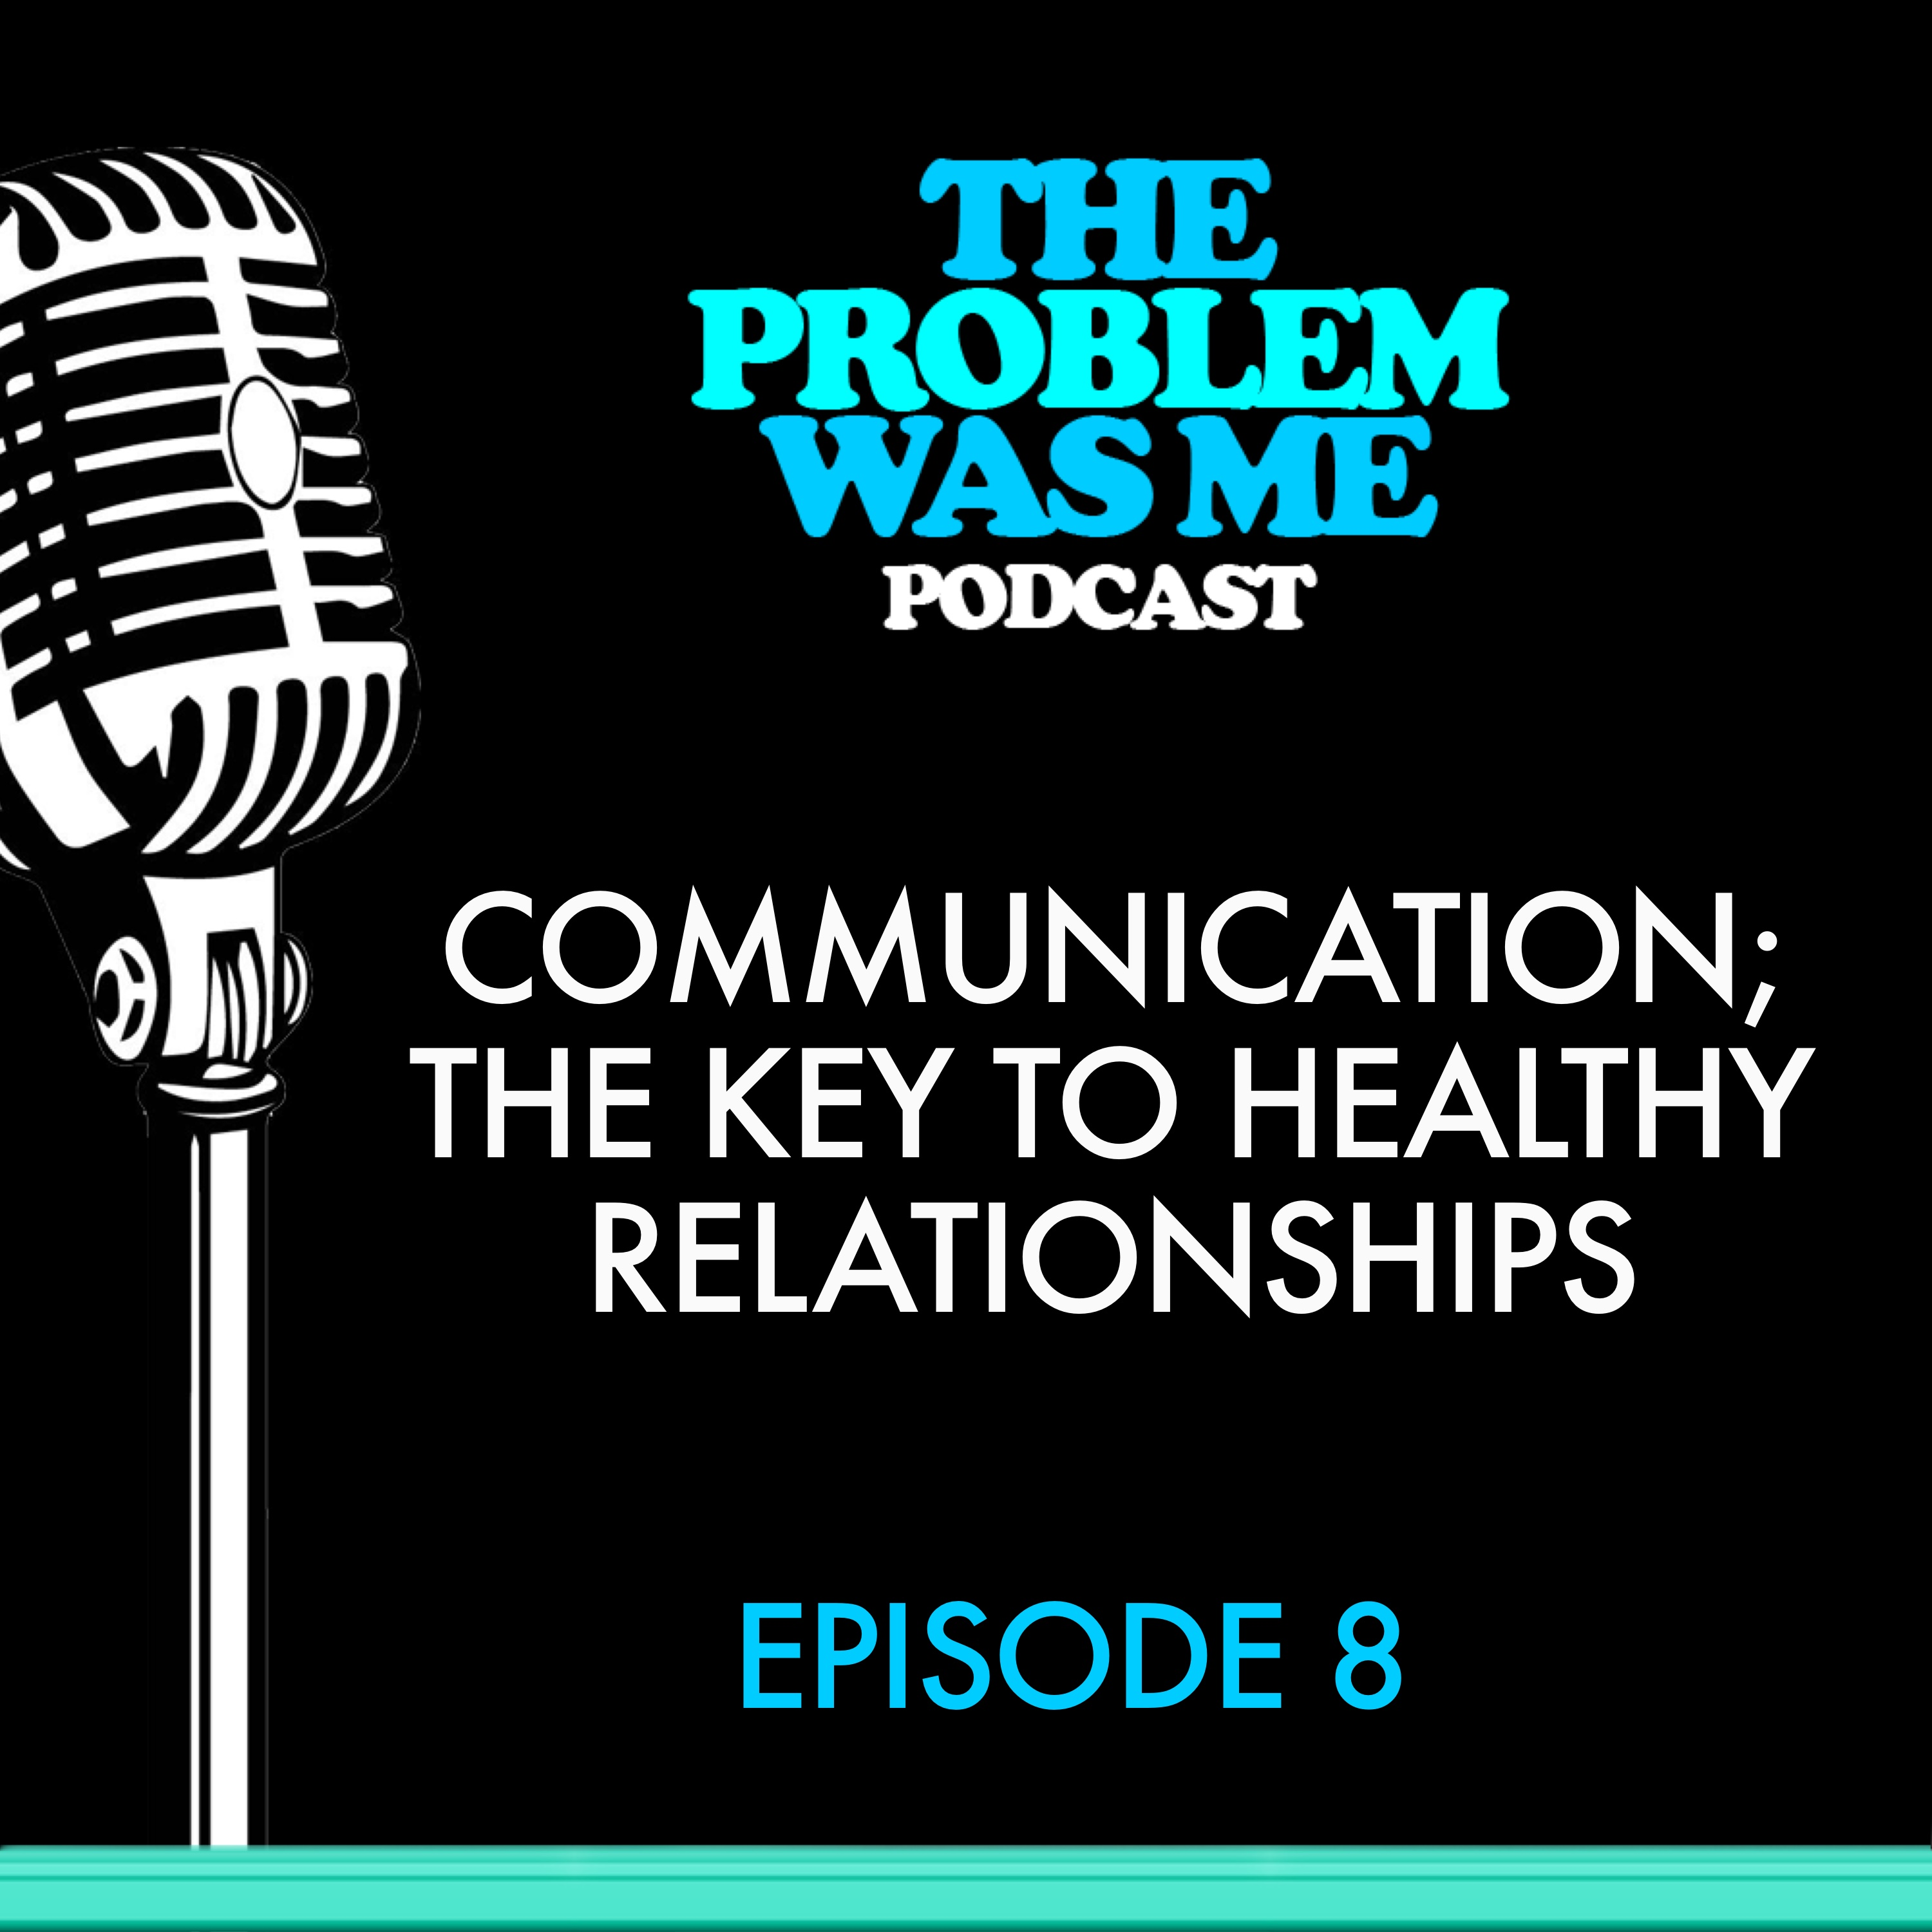 Communication; The key to healthy relationships